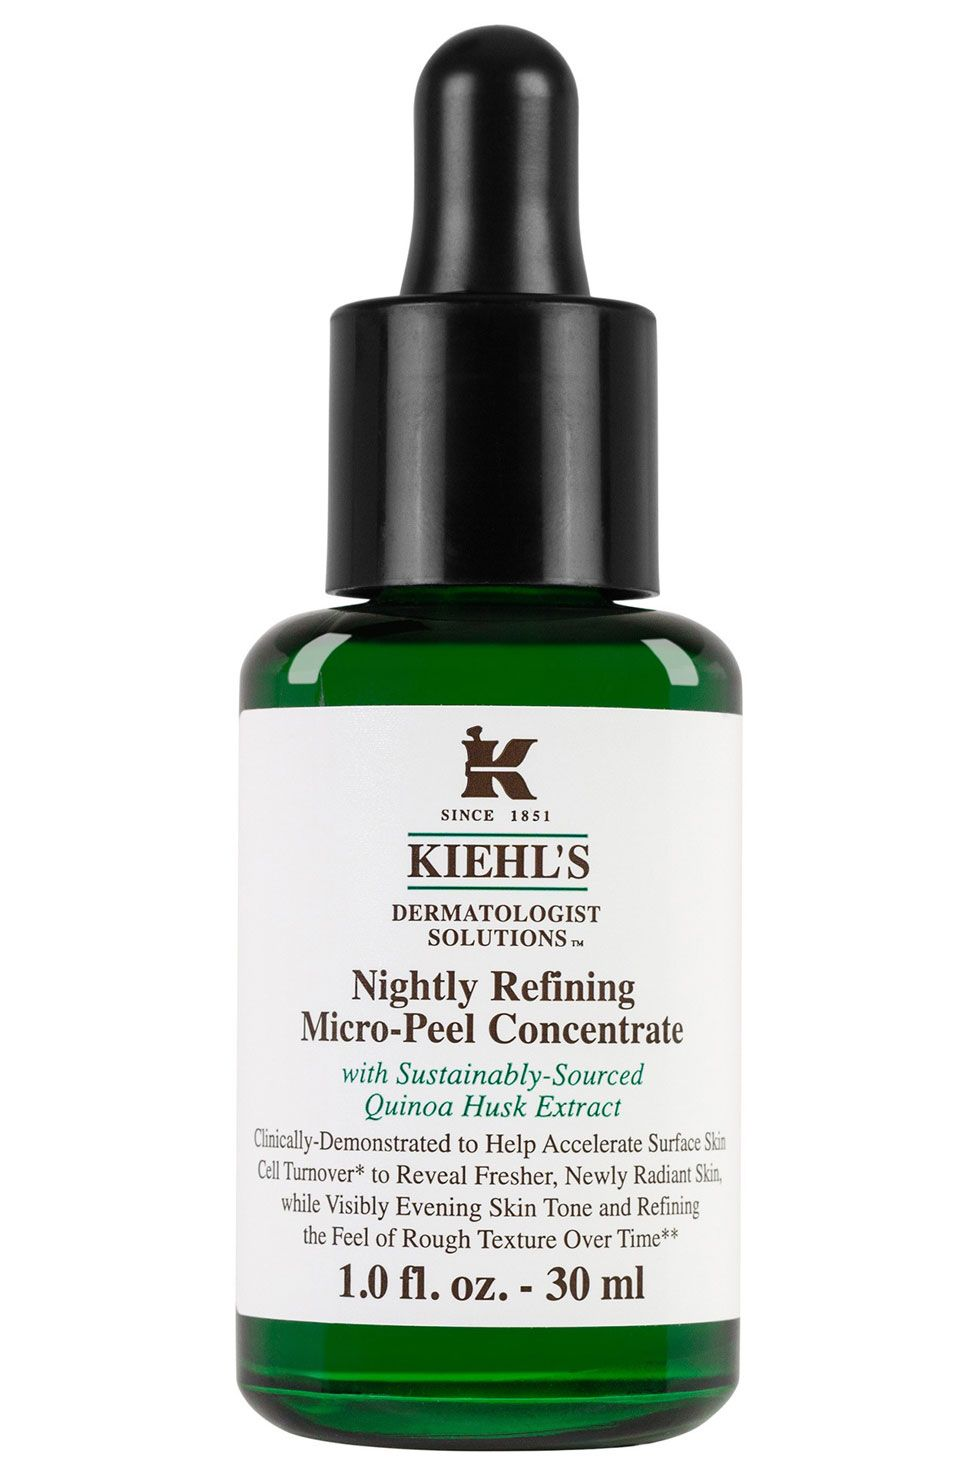 "<p>This nightly serum gently exfoliates skin while you sleep. Just pat a few drops onto your face as part of your nighttime routine (you can layer this under other serums or creams). It doesn't sting or tingle. Instead, you'll just wake up looking just a little glowier, not redder. </p><p><strong data-redactor-tag=""strong"" data-verified=""redactor"">Kiehl's</strong> Nightly Refining Micro-Peel Concentrate, $54, <a href=""https://www.kiehls.com/innovations-nightly-refining-facial-peel"">Kiehl's.com</a></p>"